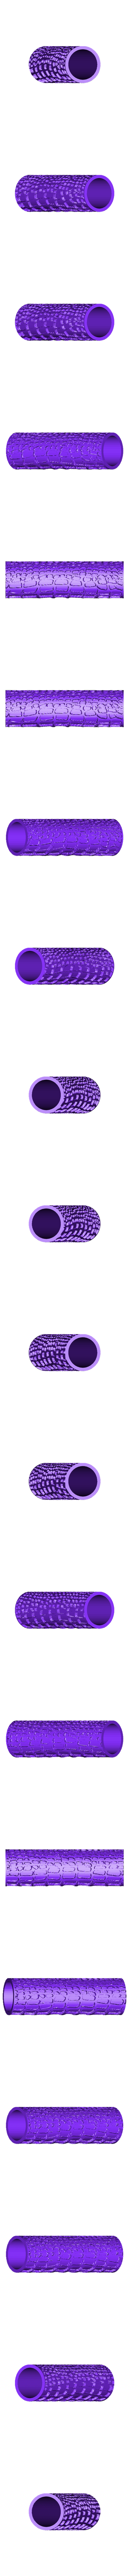 ReptileSkin01.stl Download STL file 40 Clay and XPS Foam Texture Roller Stamp • 3D printer object, emboyd